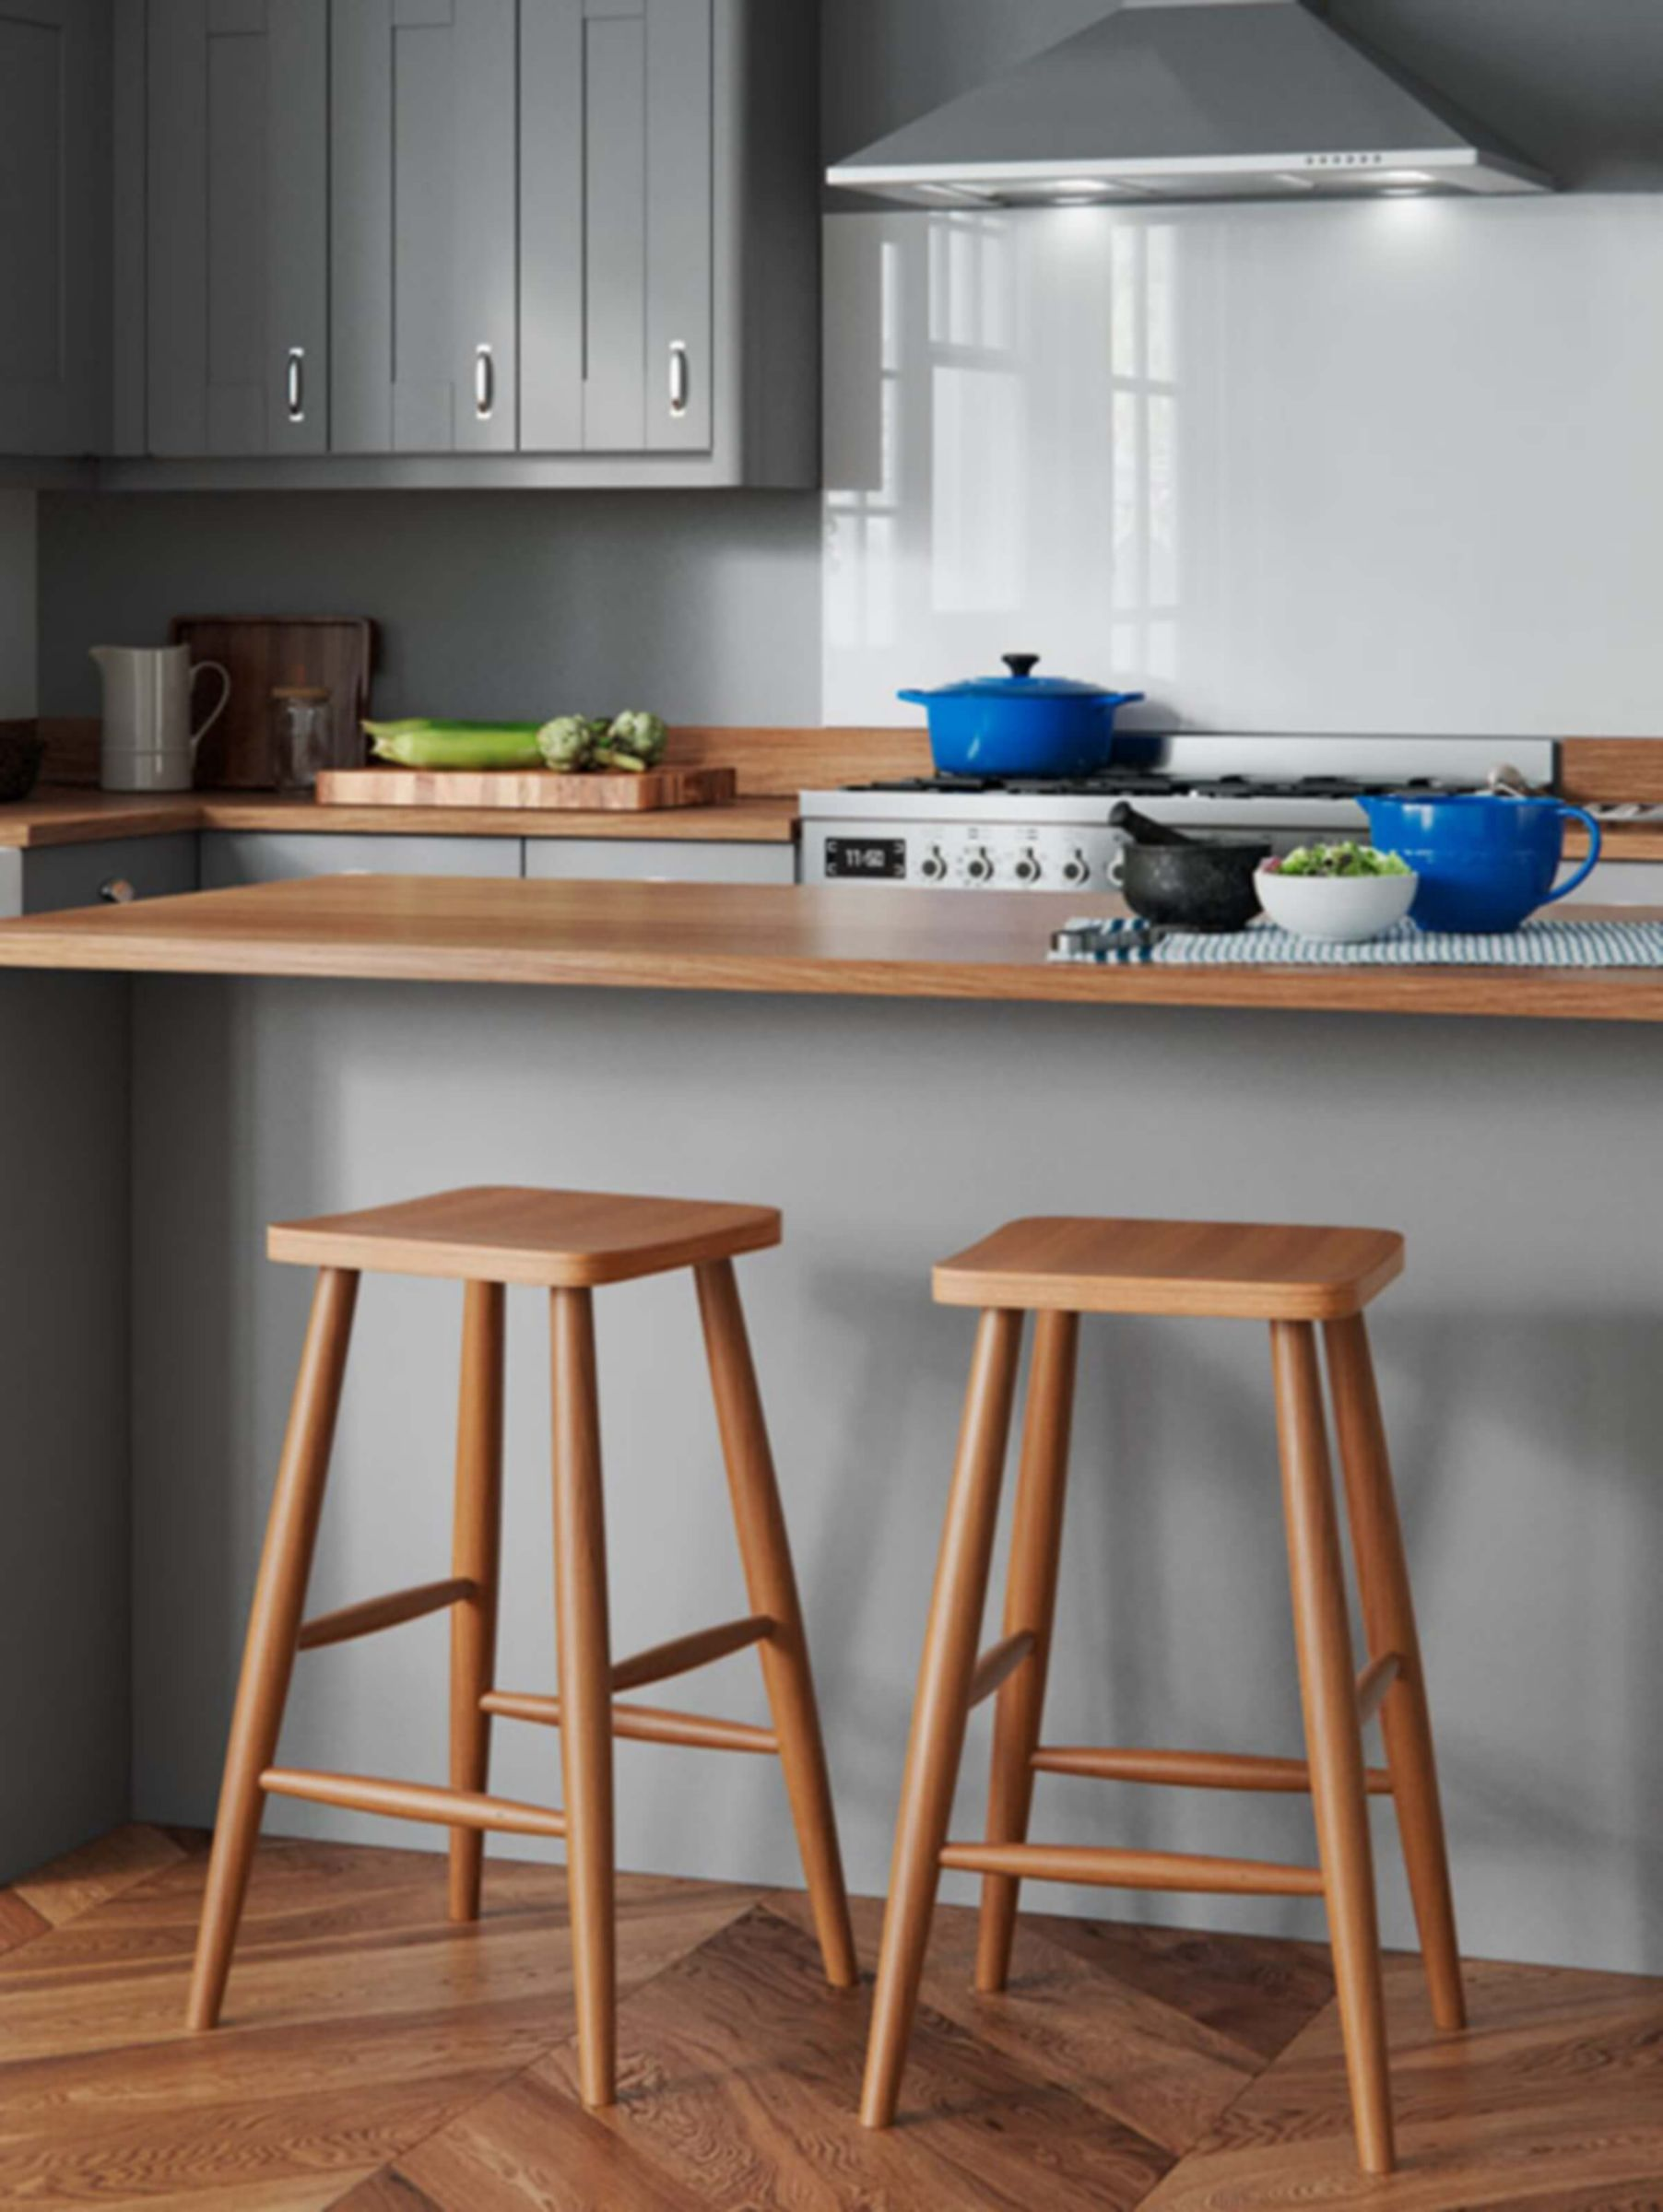 kitchen stools uk john lewis wow blog. Black Bedroom Furniture Sets. Home Design Ideas